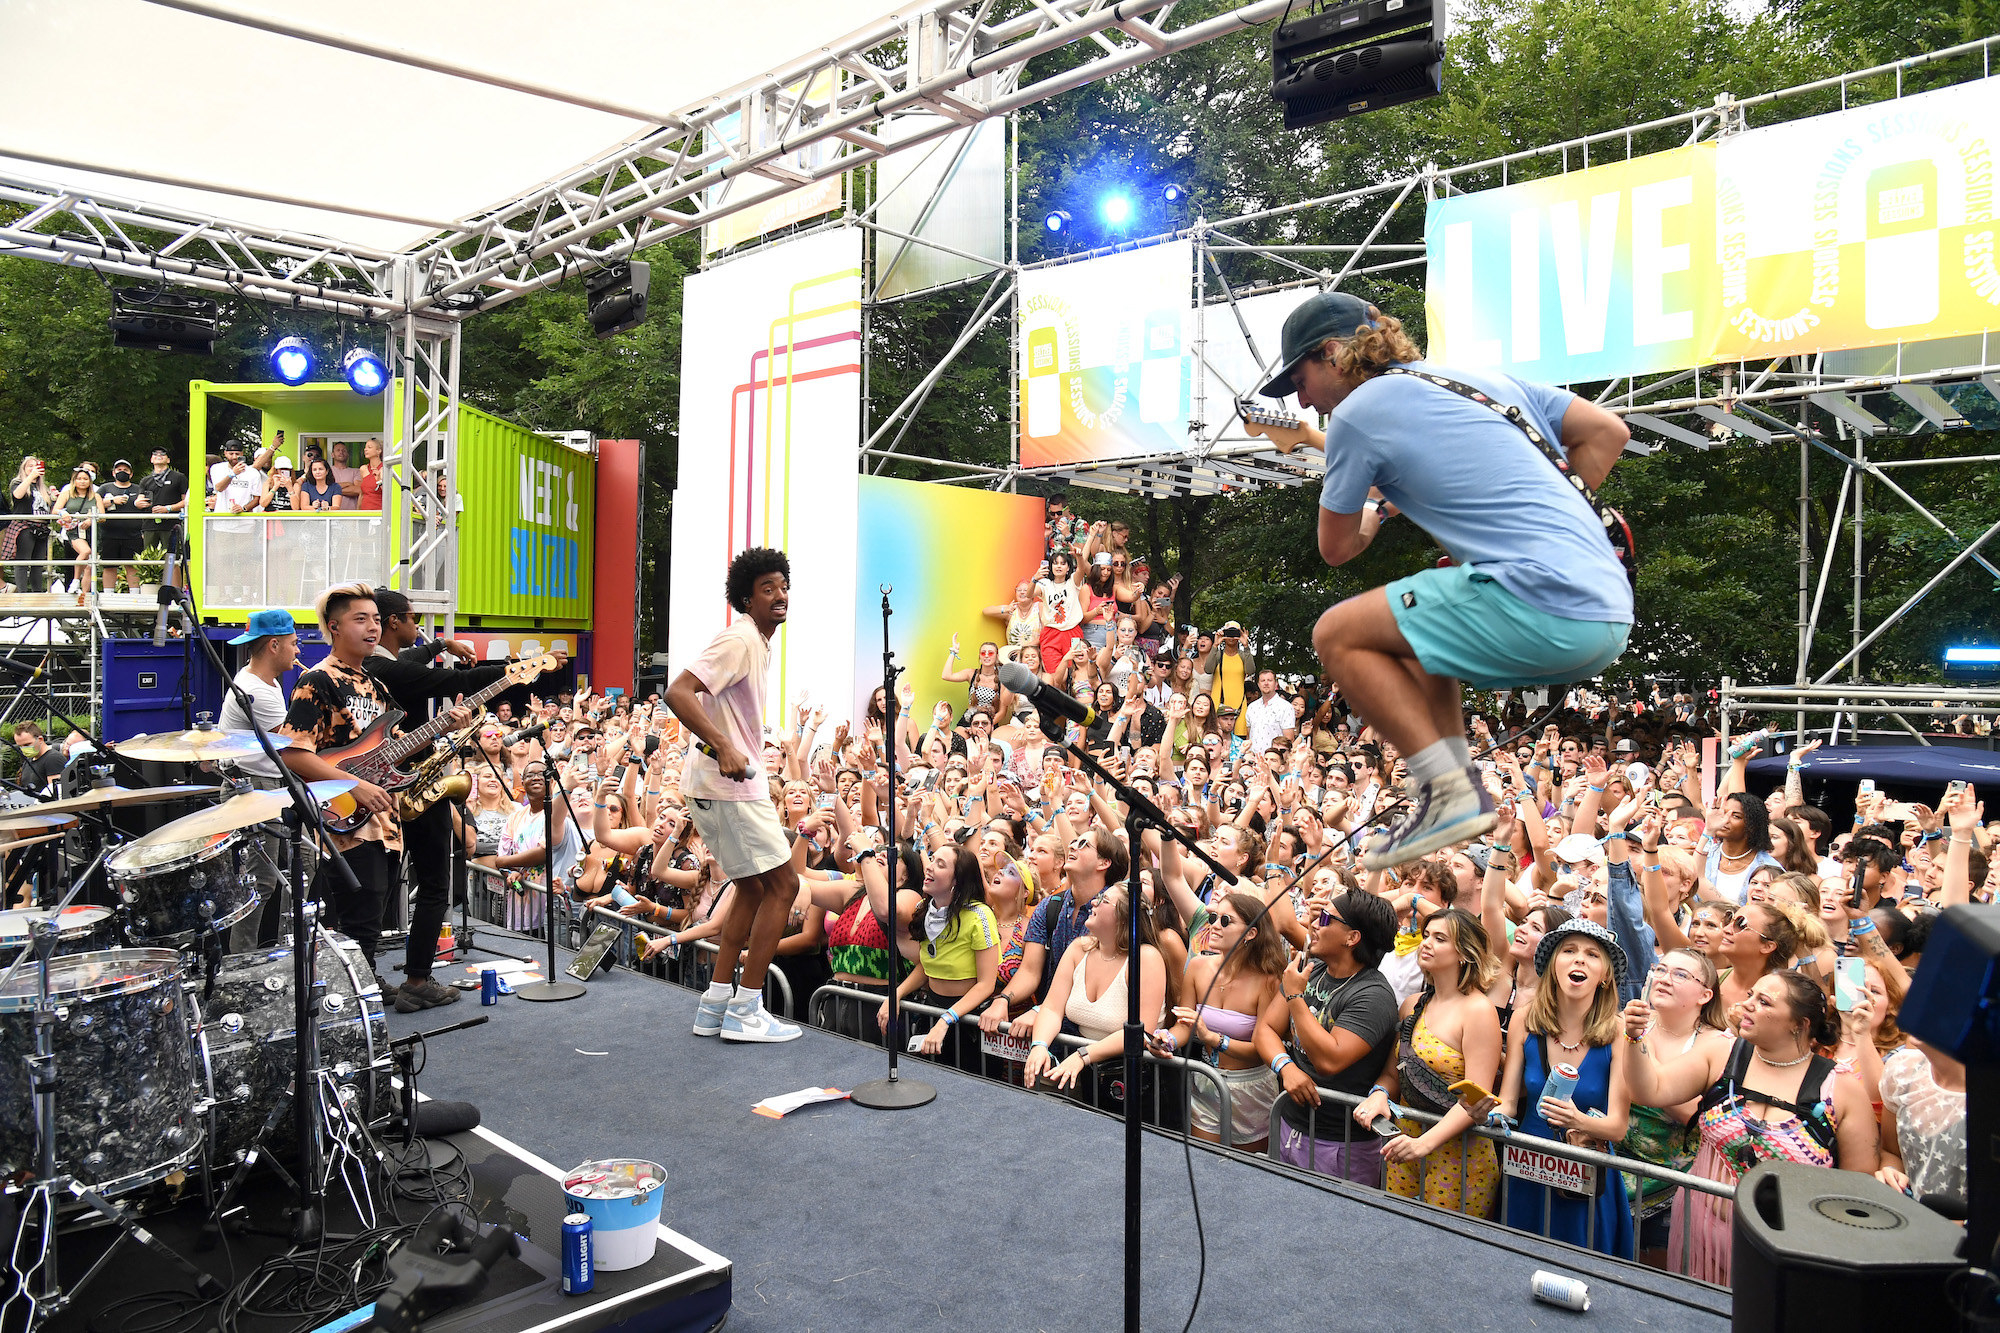 A musician is seen jumping high in the air with a guitar as an audience takes in a performance at Lollapalooza.